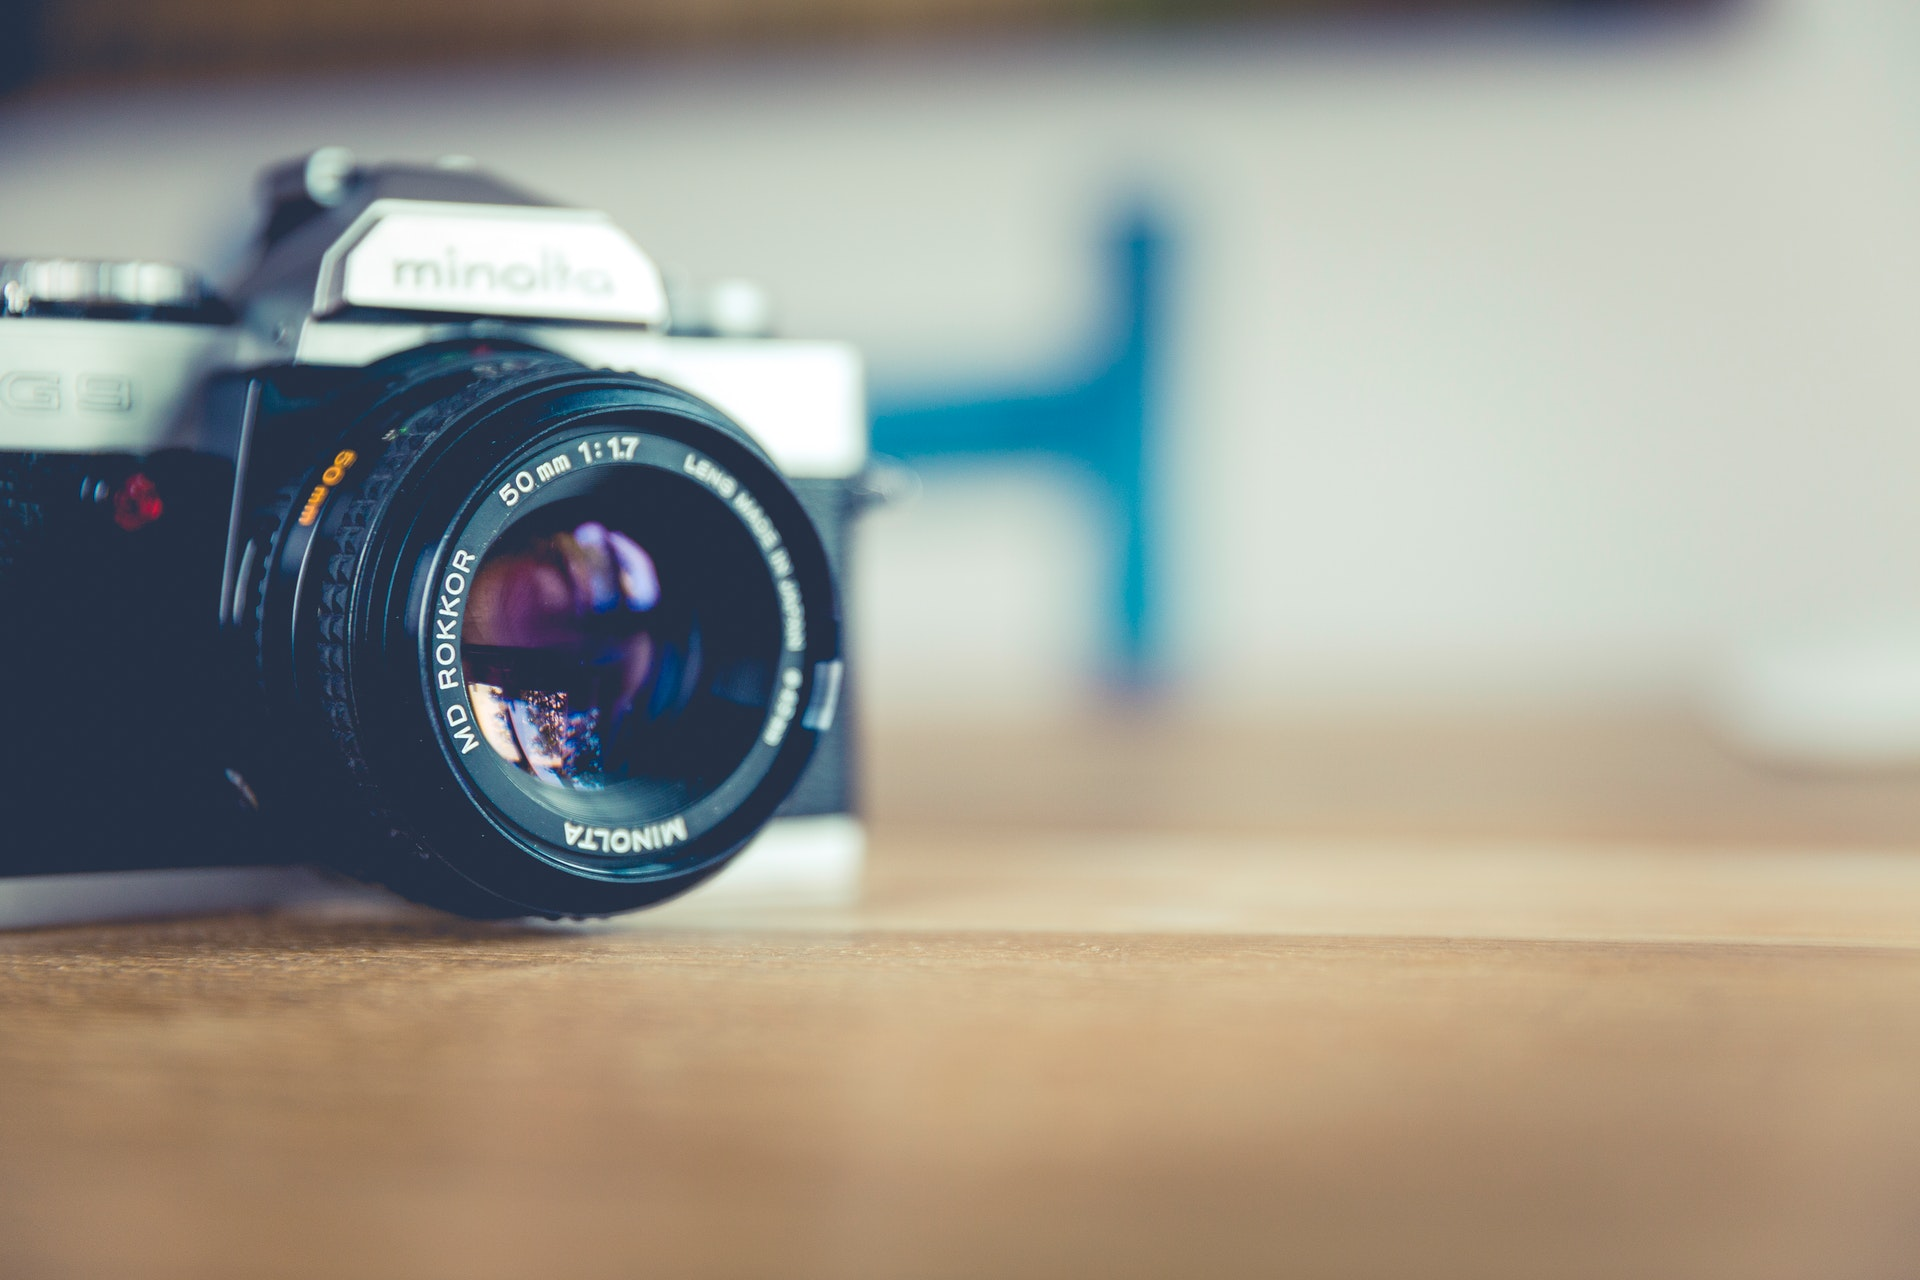 Picture of vintage camera. Photo by Markus Spiske from Pexels